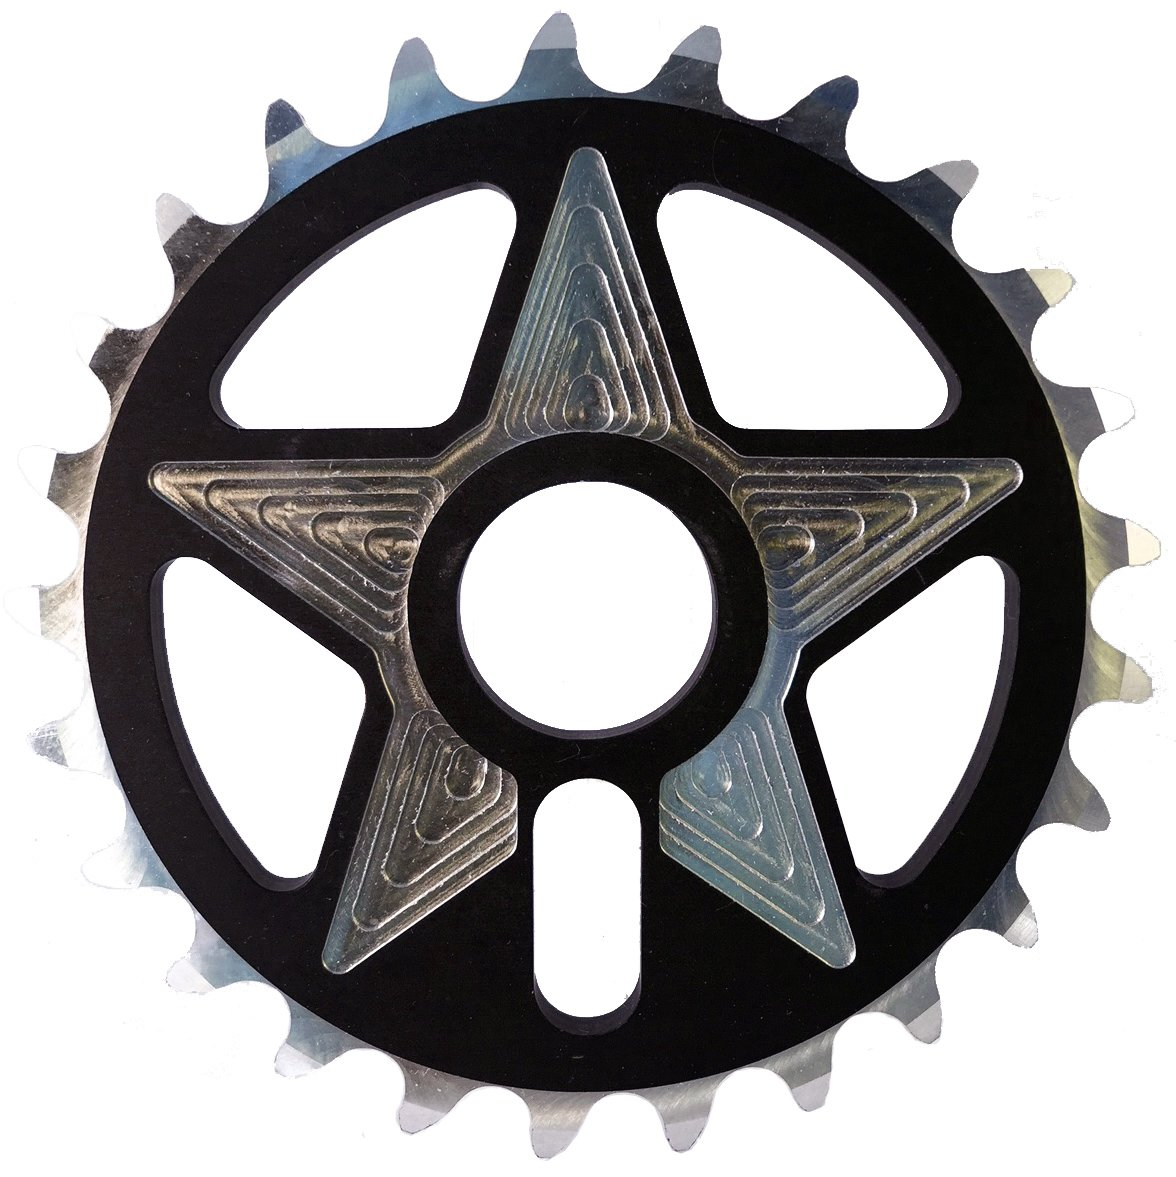 USA Made 25T SHARKTOOTH Supernova BMX Sprocket MADE IN USA- NEW